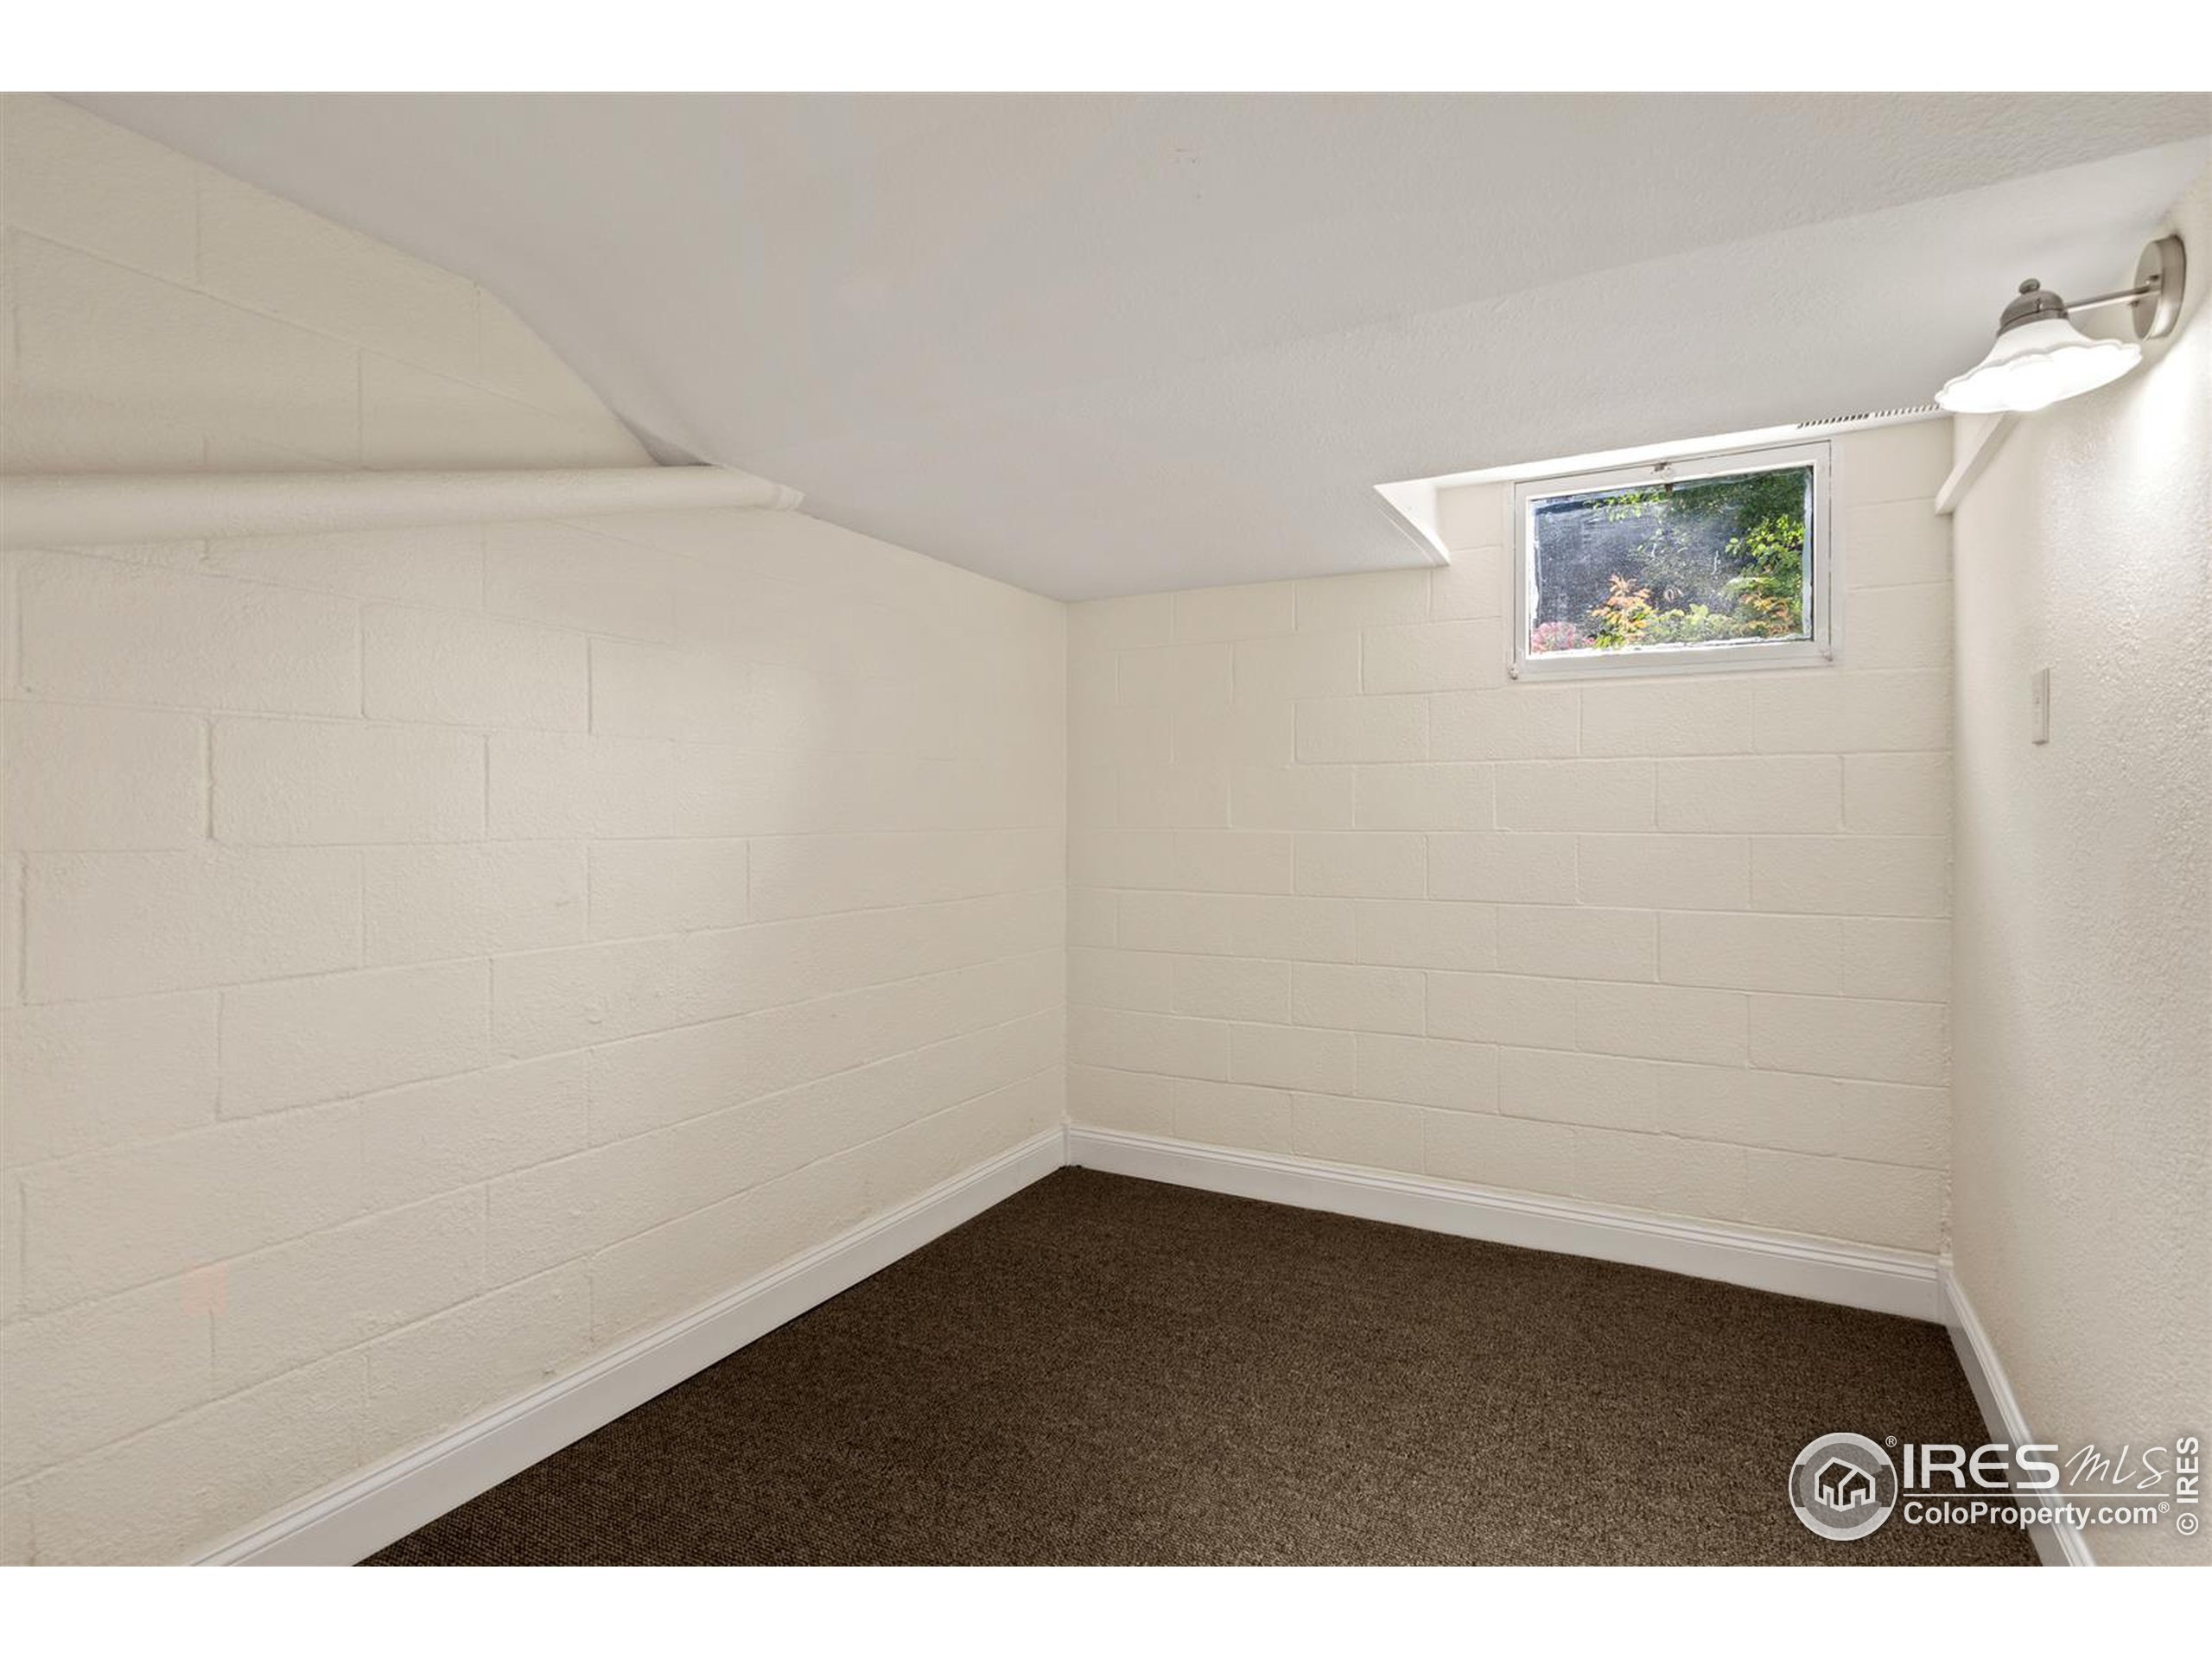 Many flex rooms in the basement - this one is perfect for an office/study or home gym